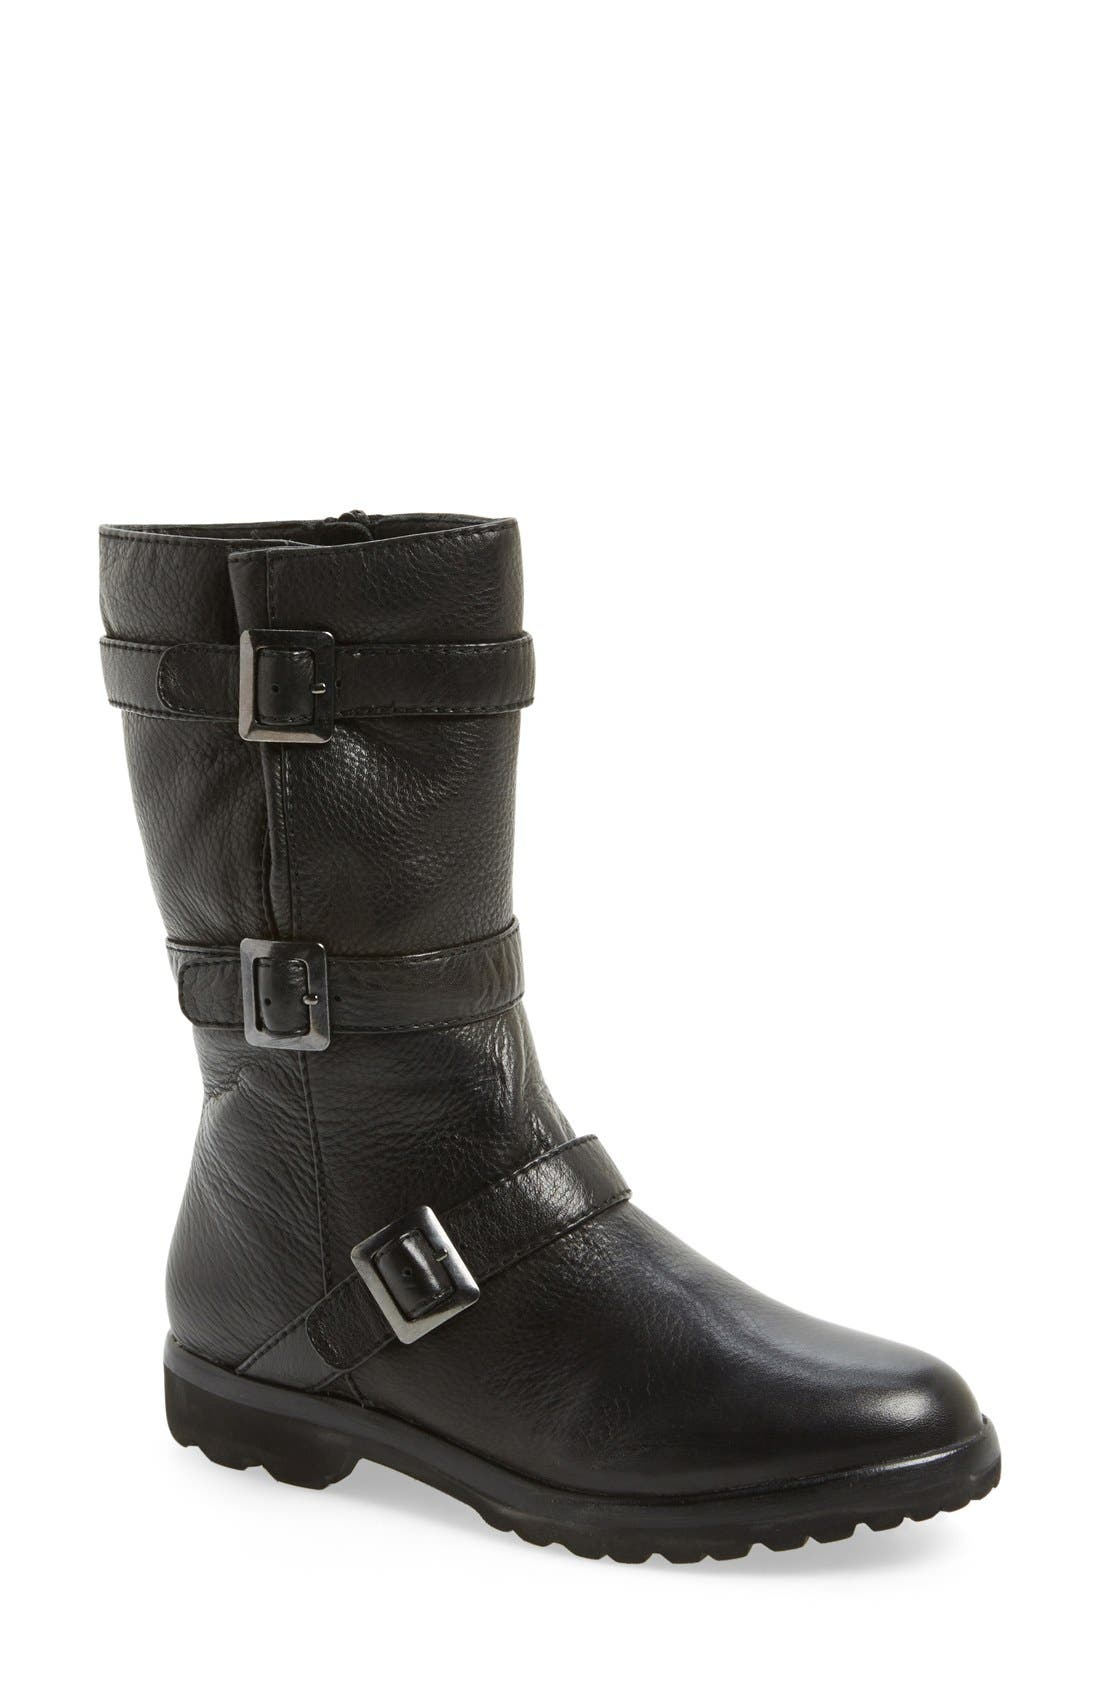 Main Image - L'Amour Des Pieds 'Racey' Belted Mid Boot (Women)